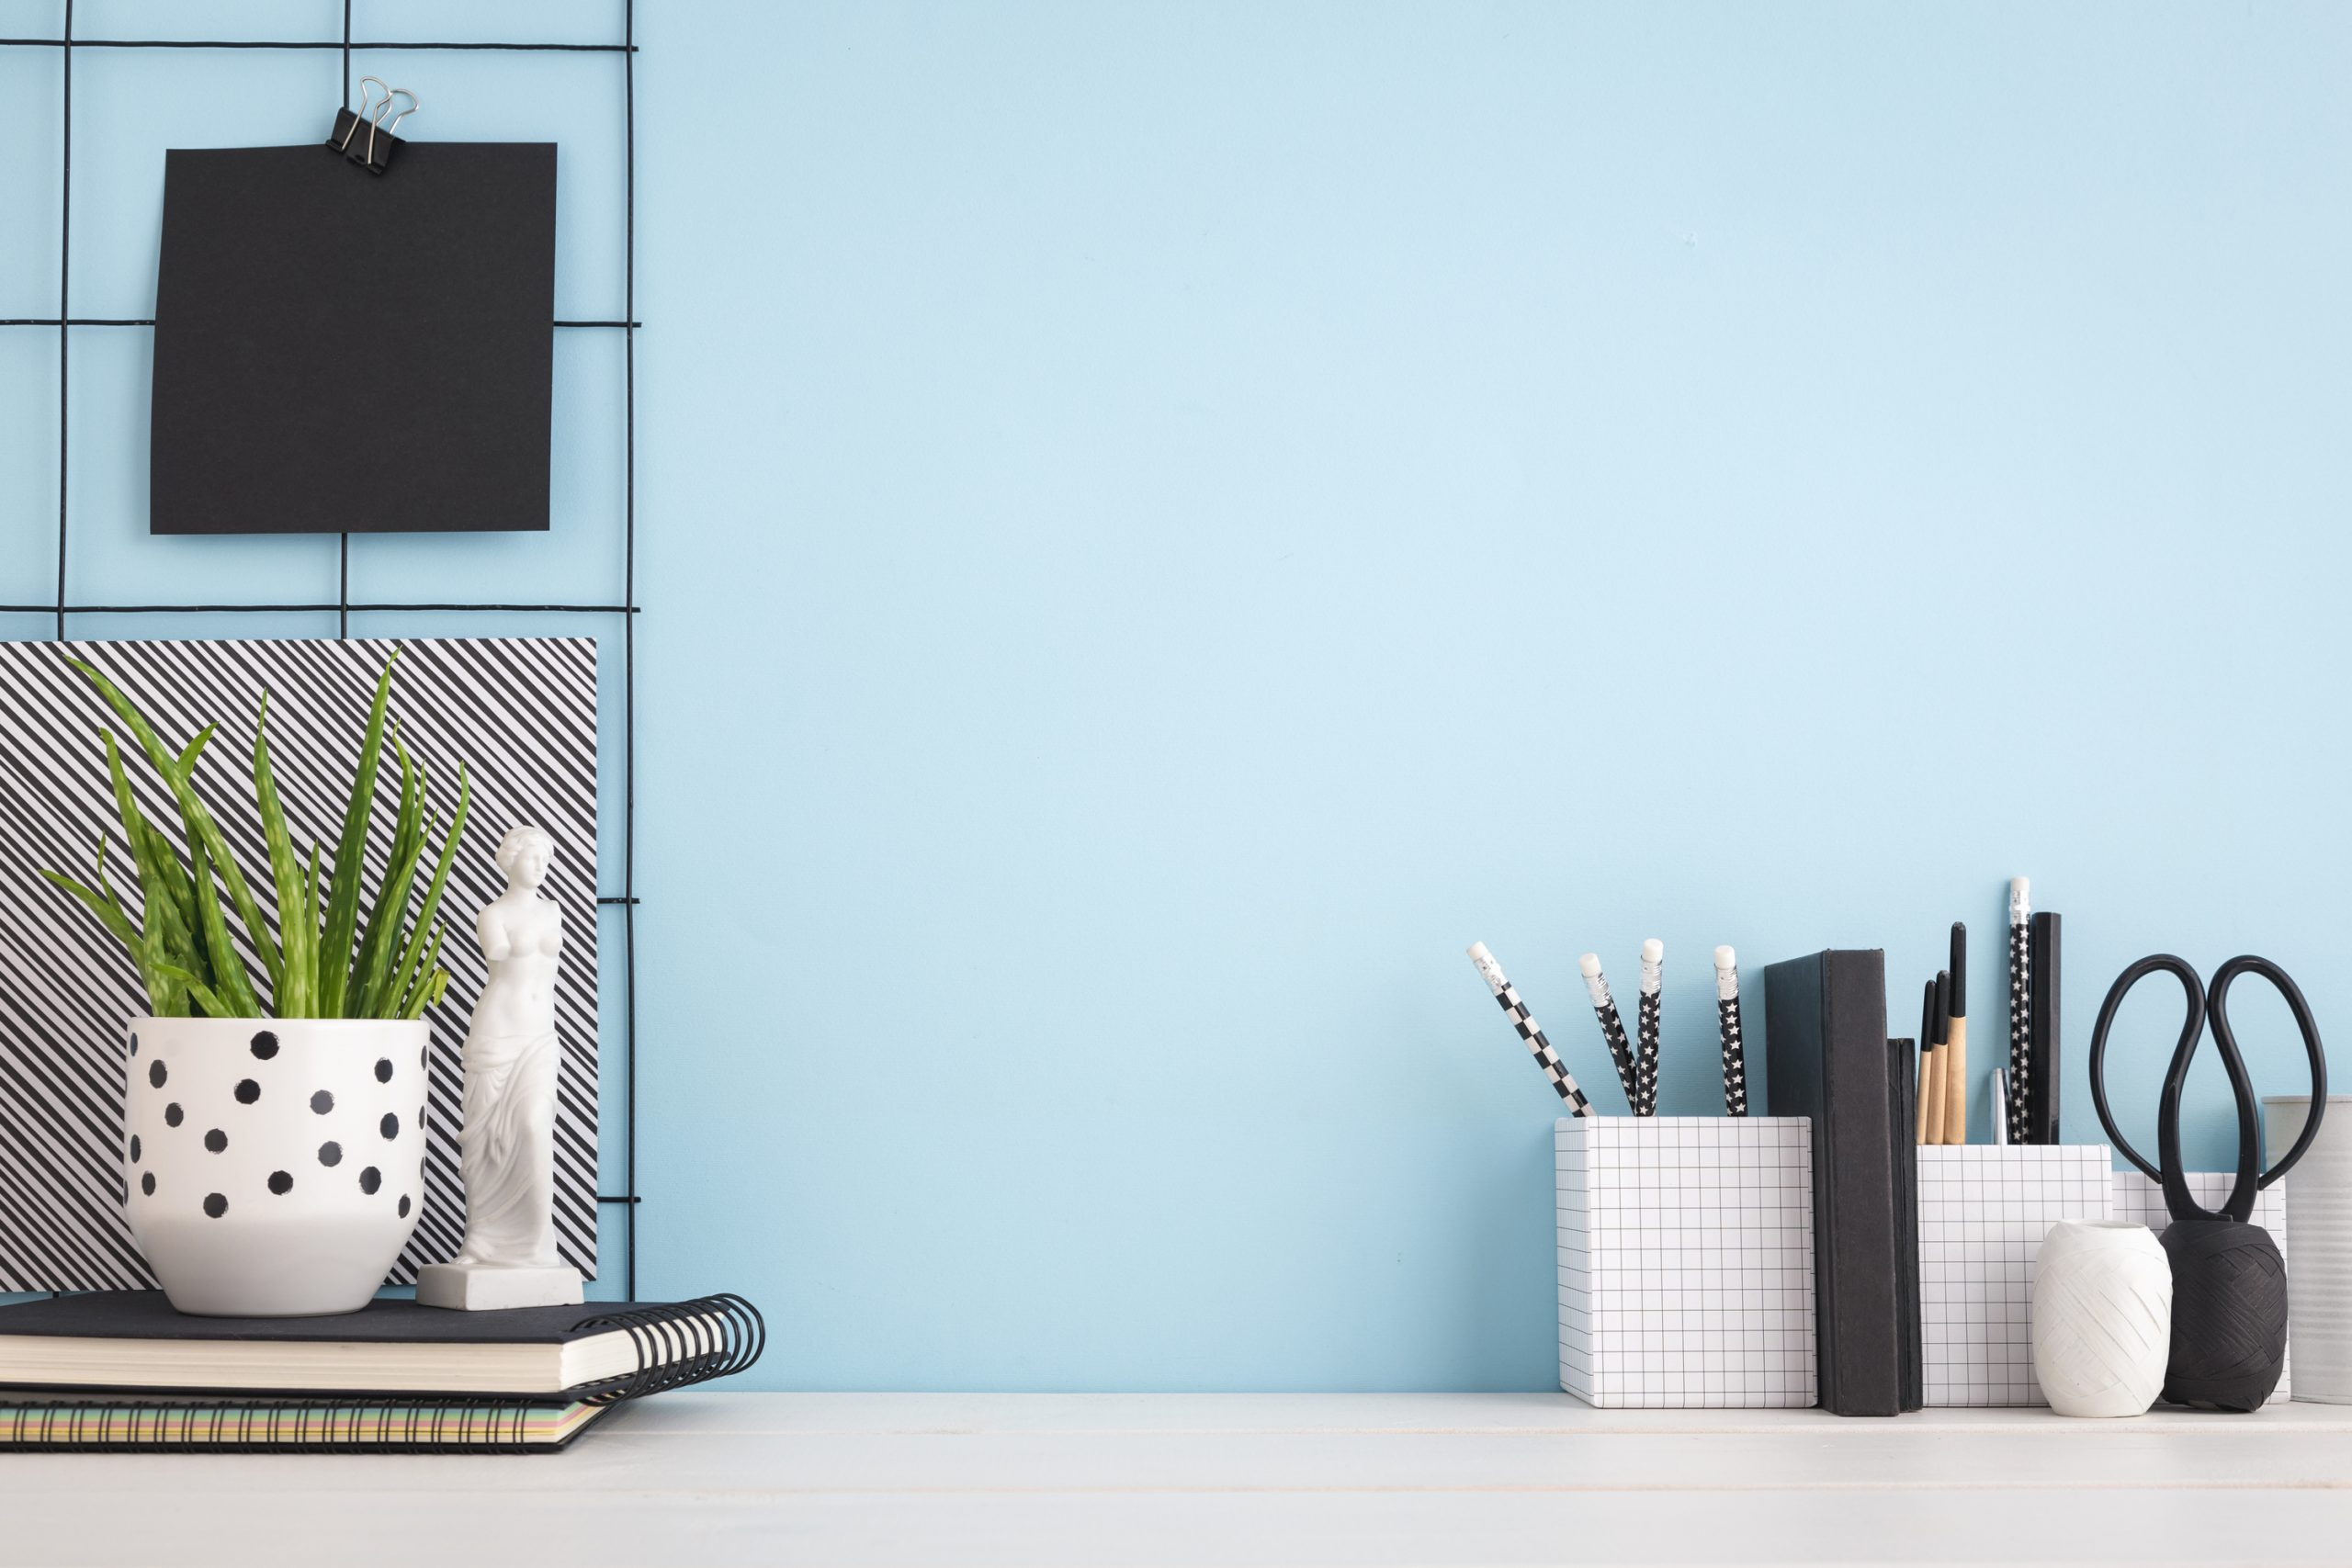 Are you looking to make your own DIY office decor? You're in luck! We have the best DIY office decor inspiration to get you started.